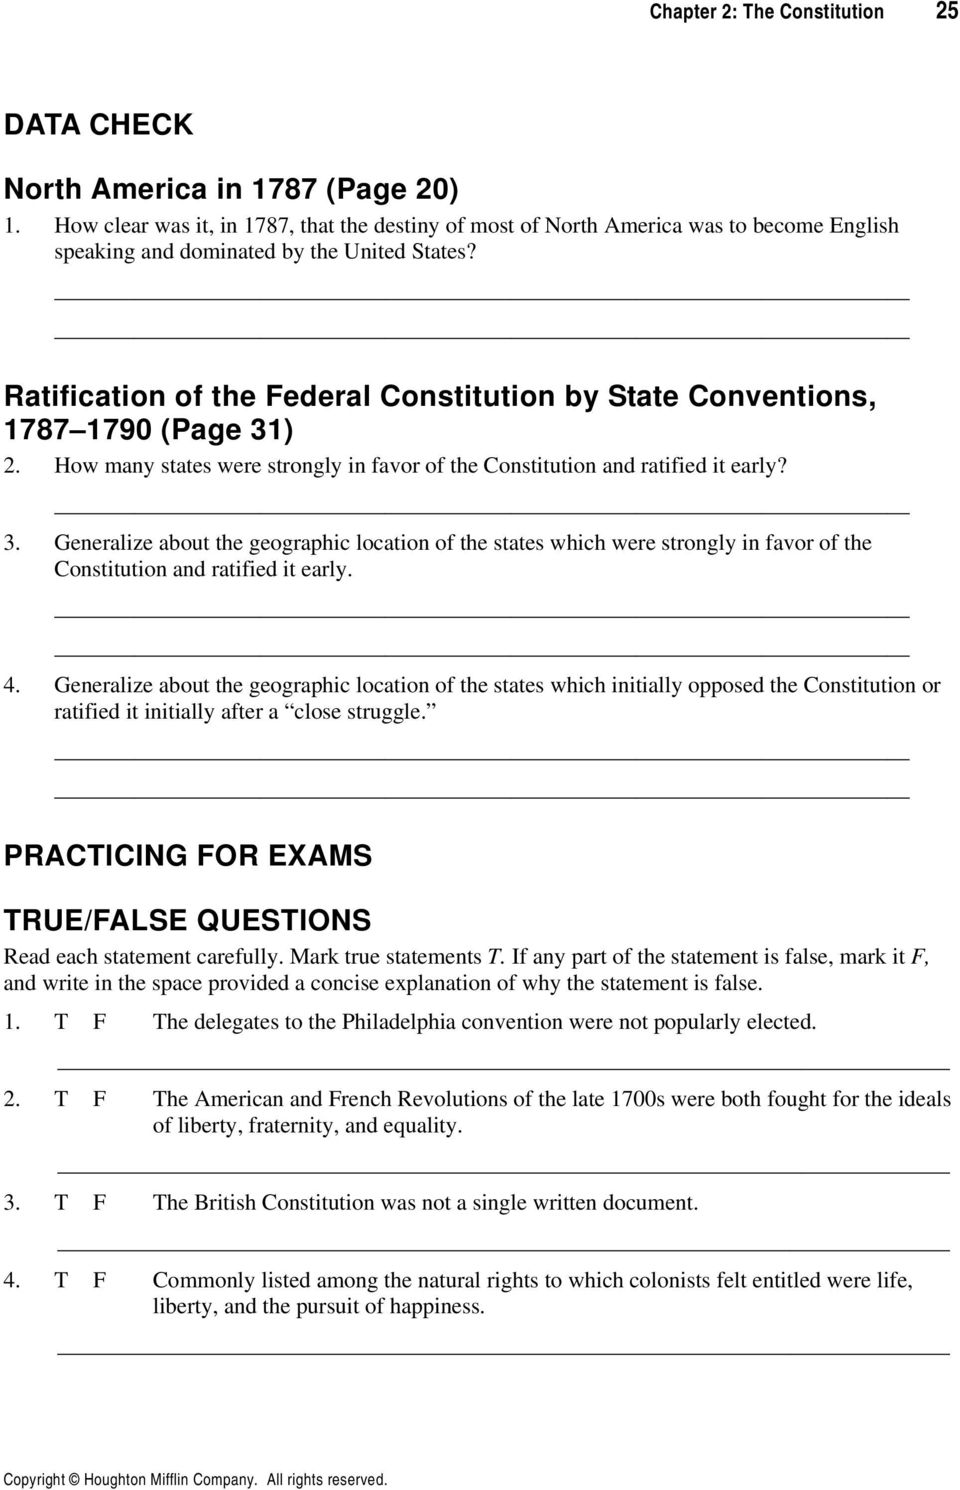 hight resolution of The Constitution CHAPTER 2 REVIEWING THE CHAPTER CHAPTER FOCUS - PDF Free  Download